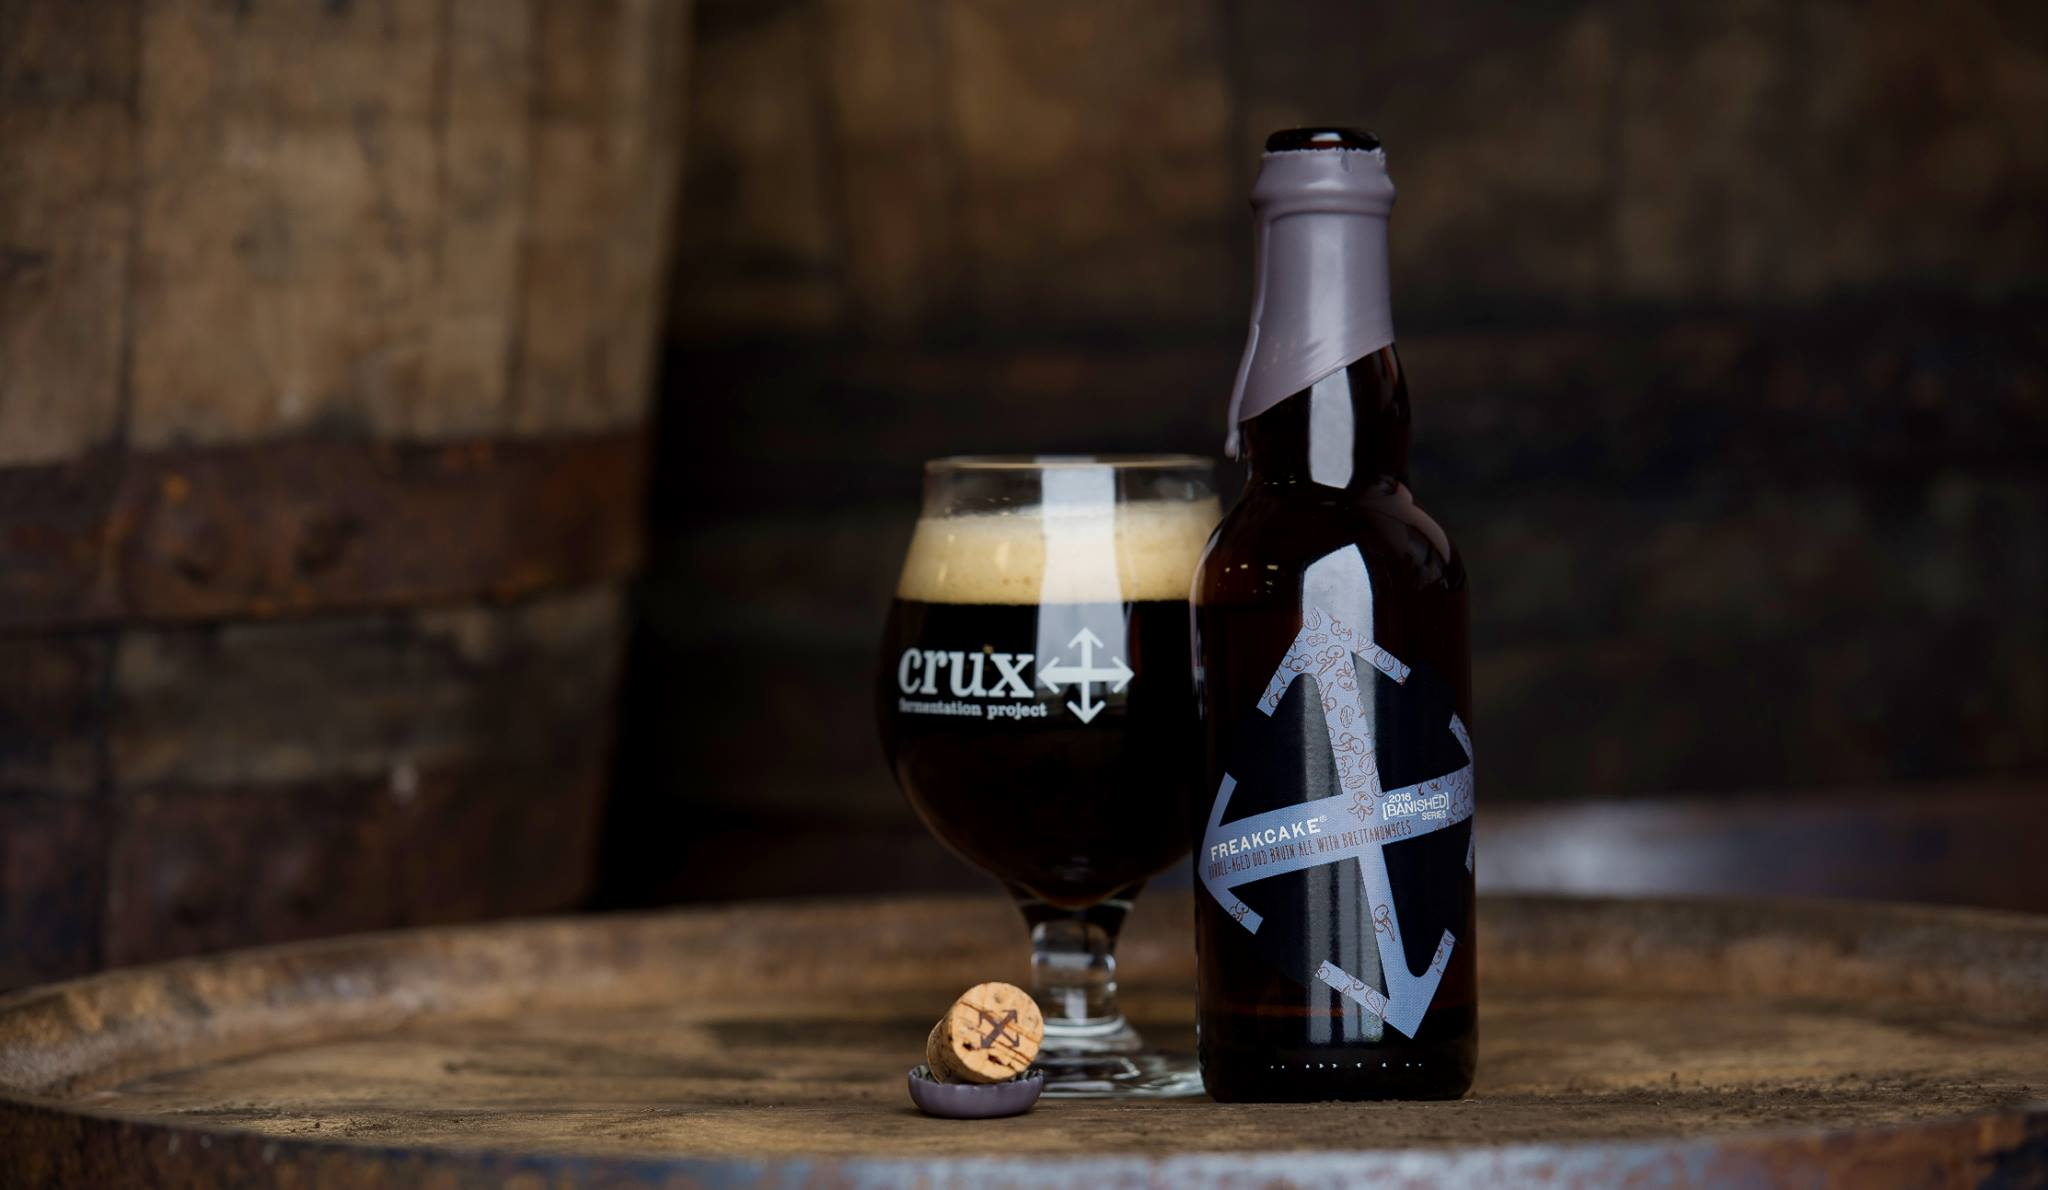 Crux Fermentation Project Banished Freakcake Oud Bruin. (image courtesy of Crux Fermentation Project)